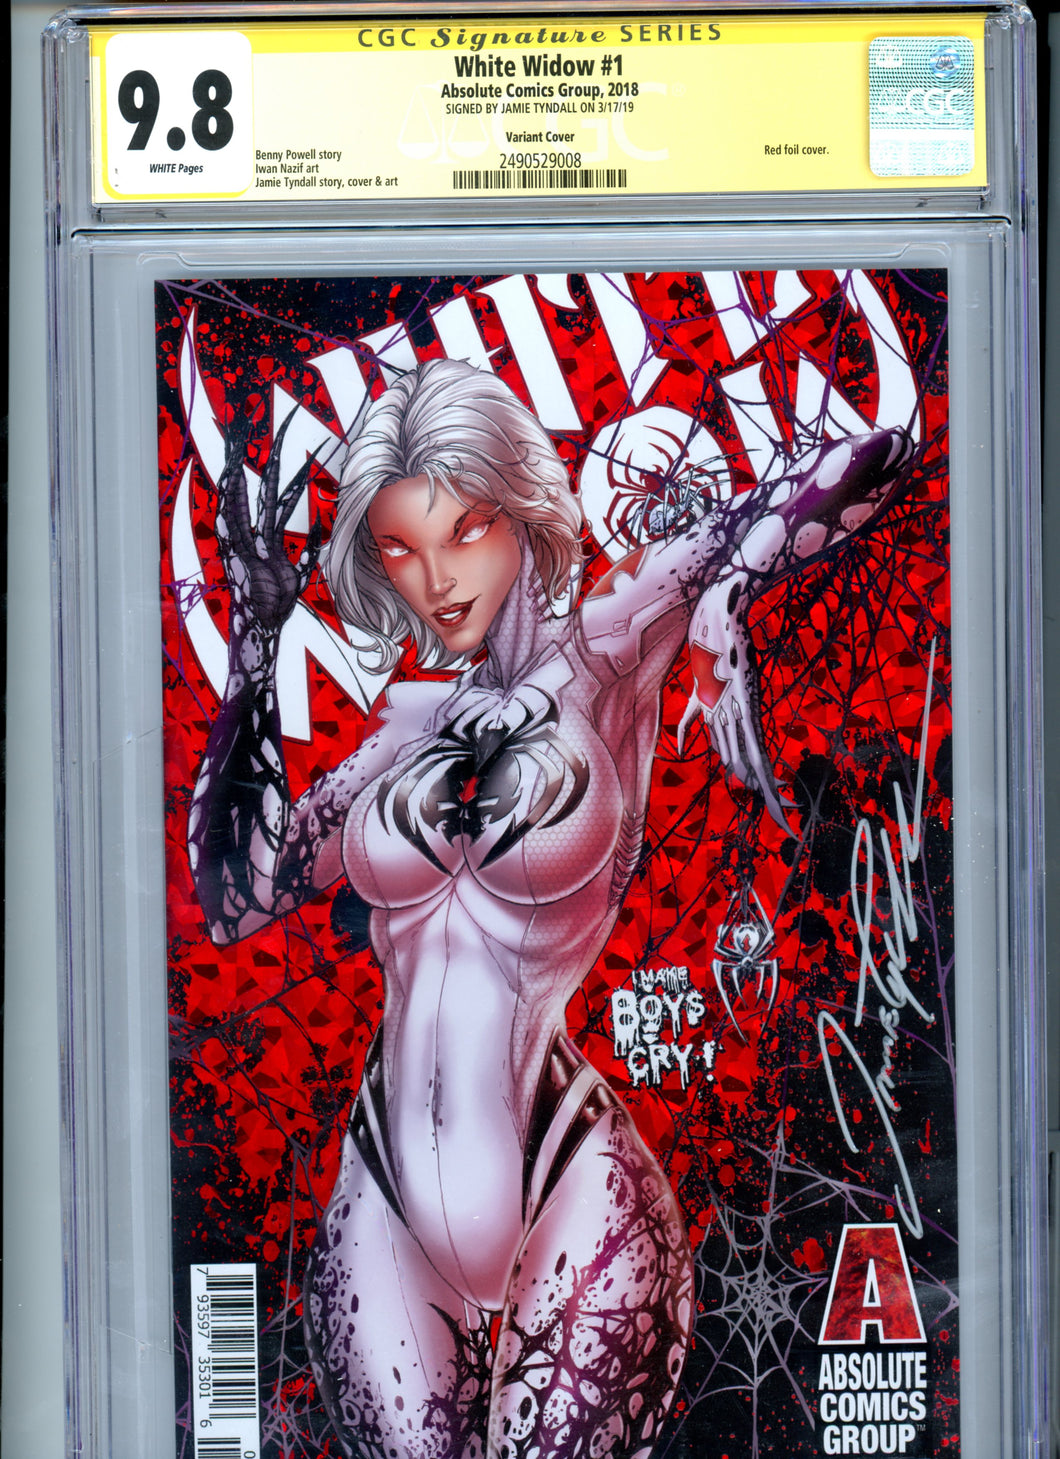 White Widow #1 - COVER B - Signed by Jamie Tyndall - CGC 9.8